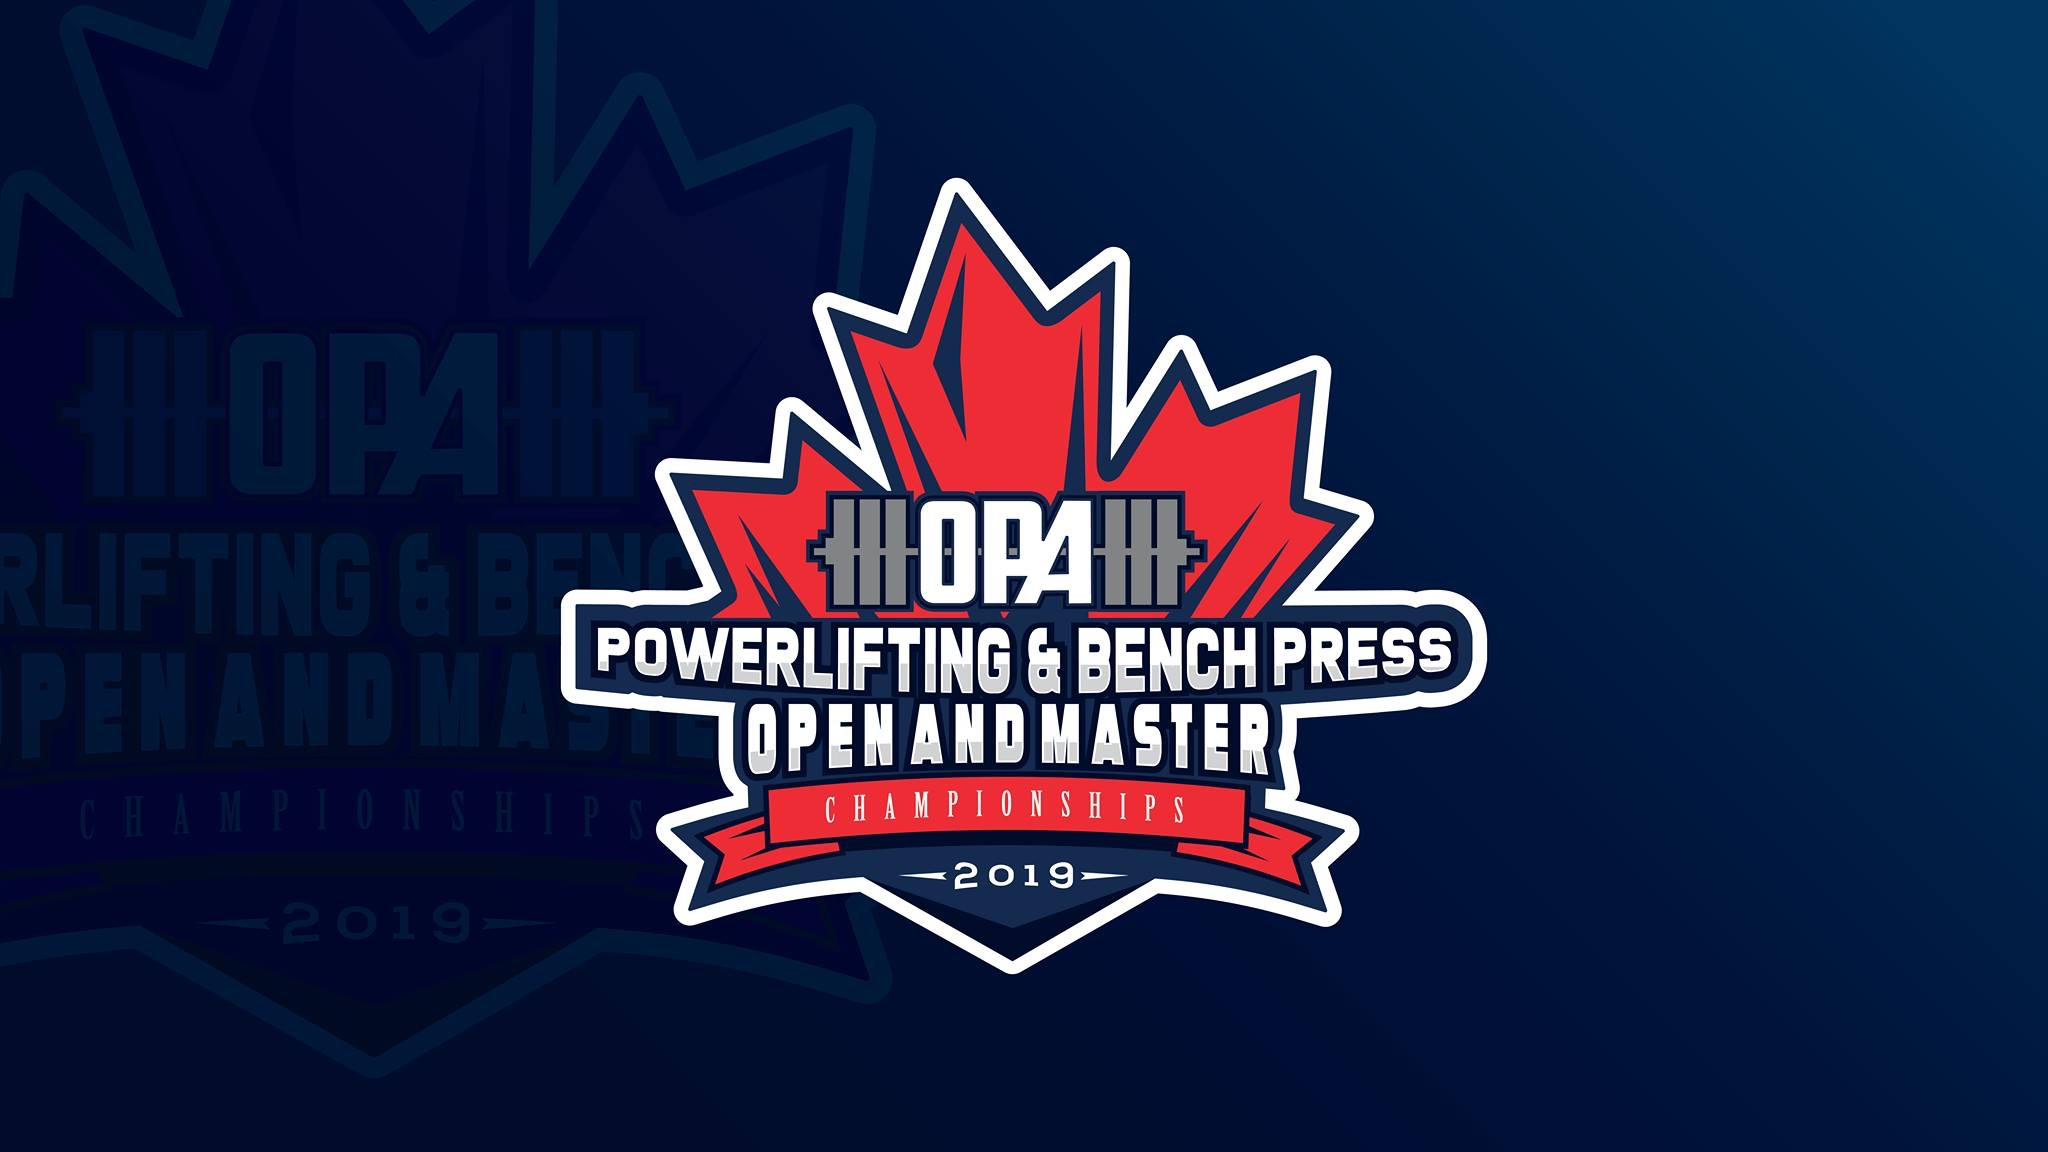 OPA Powerlifting Championship